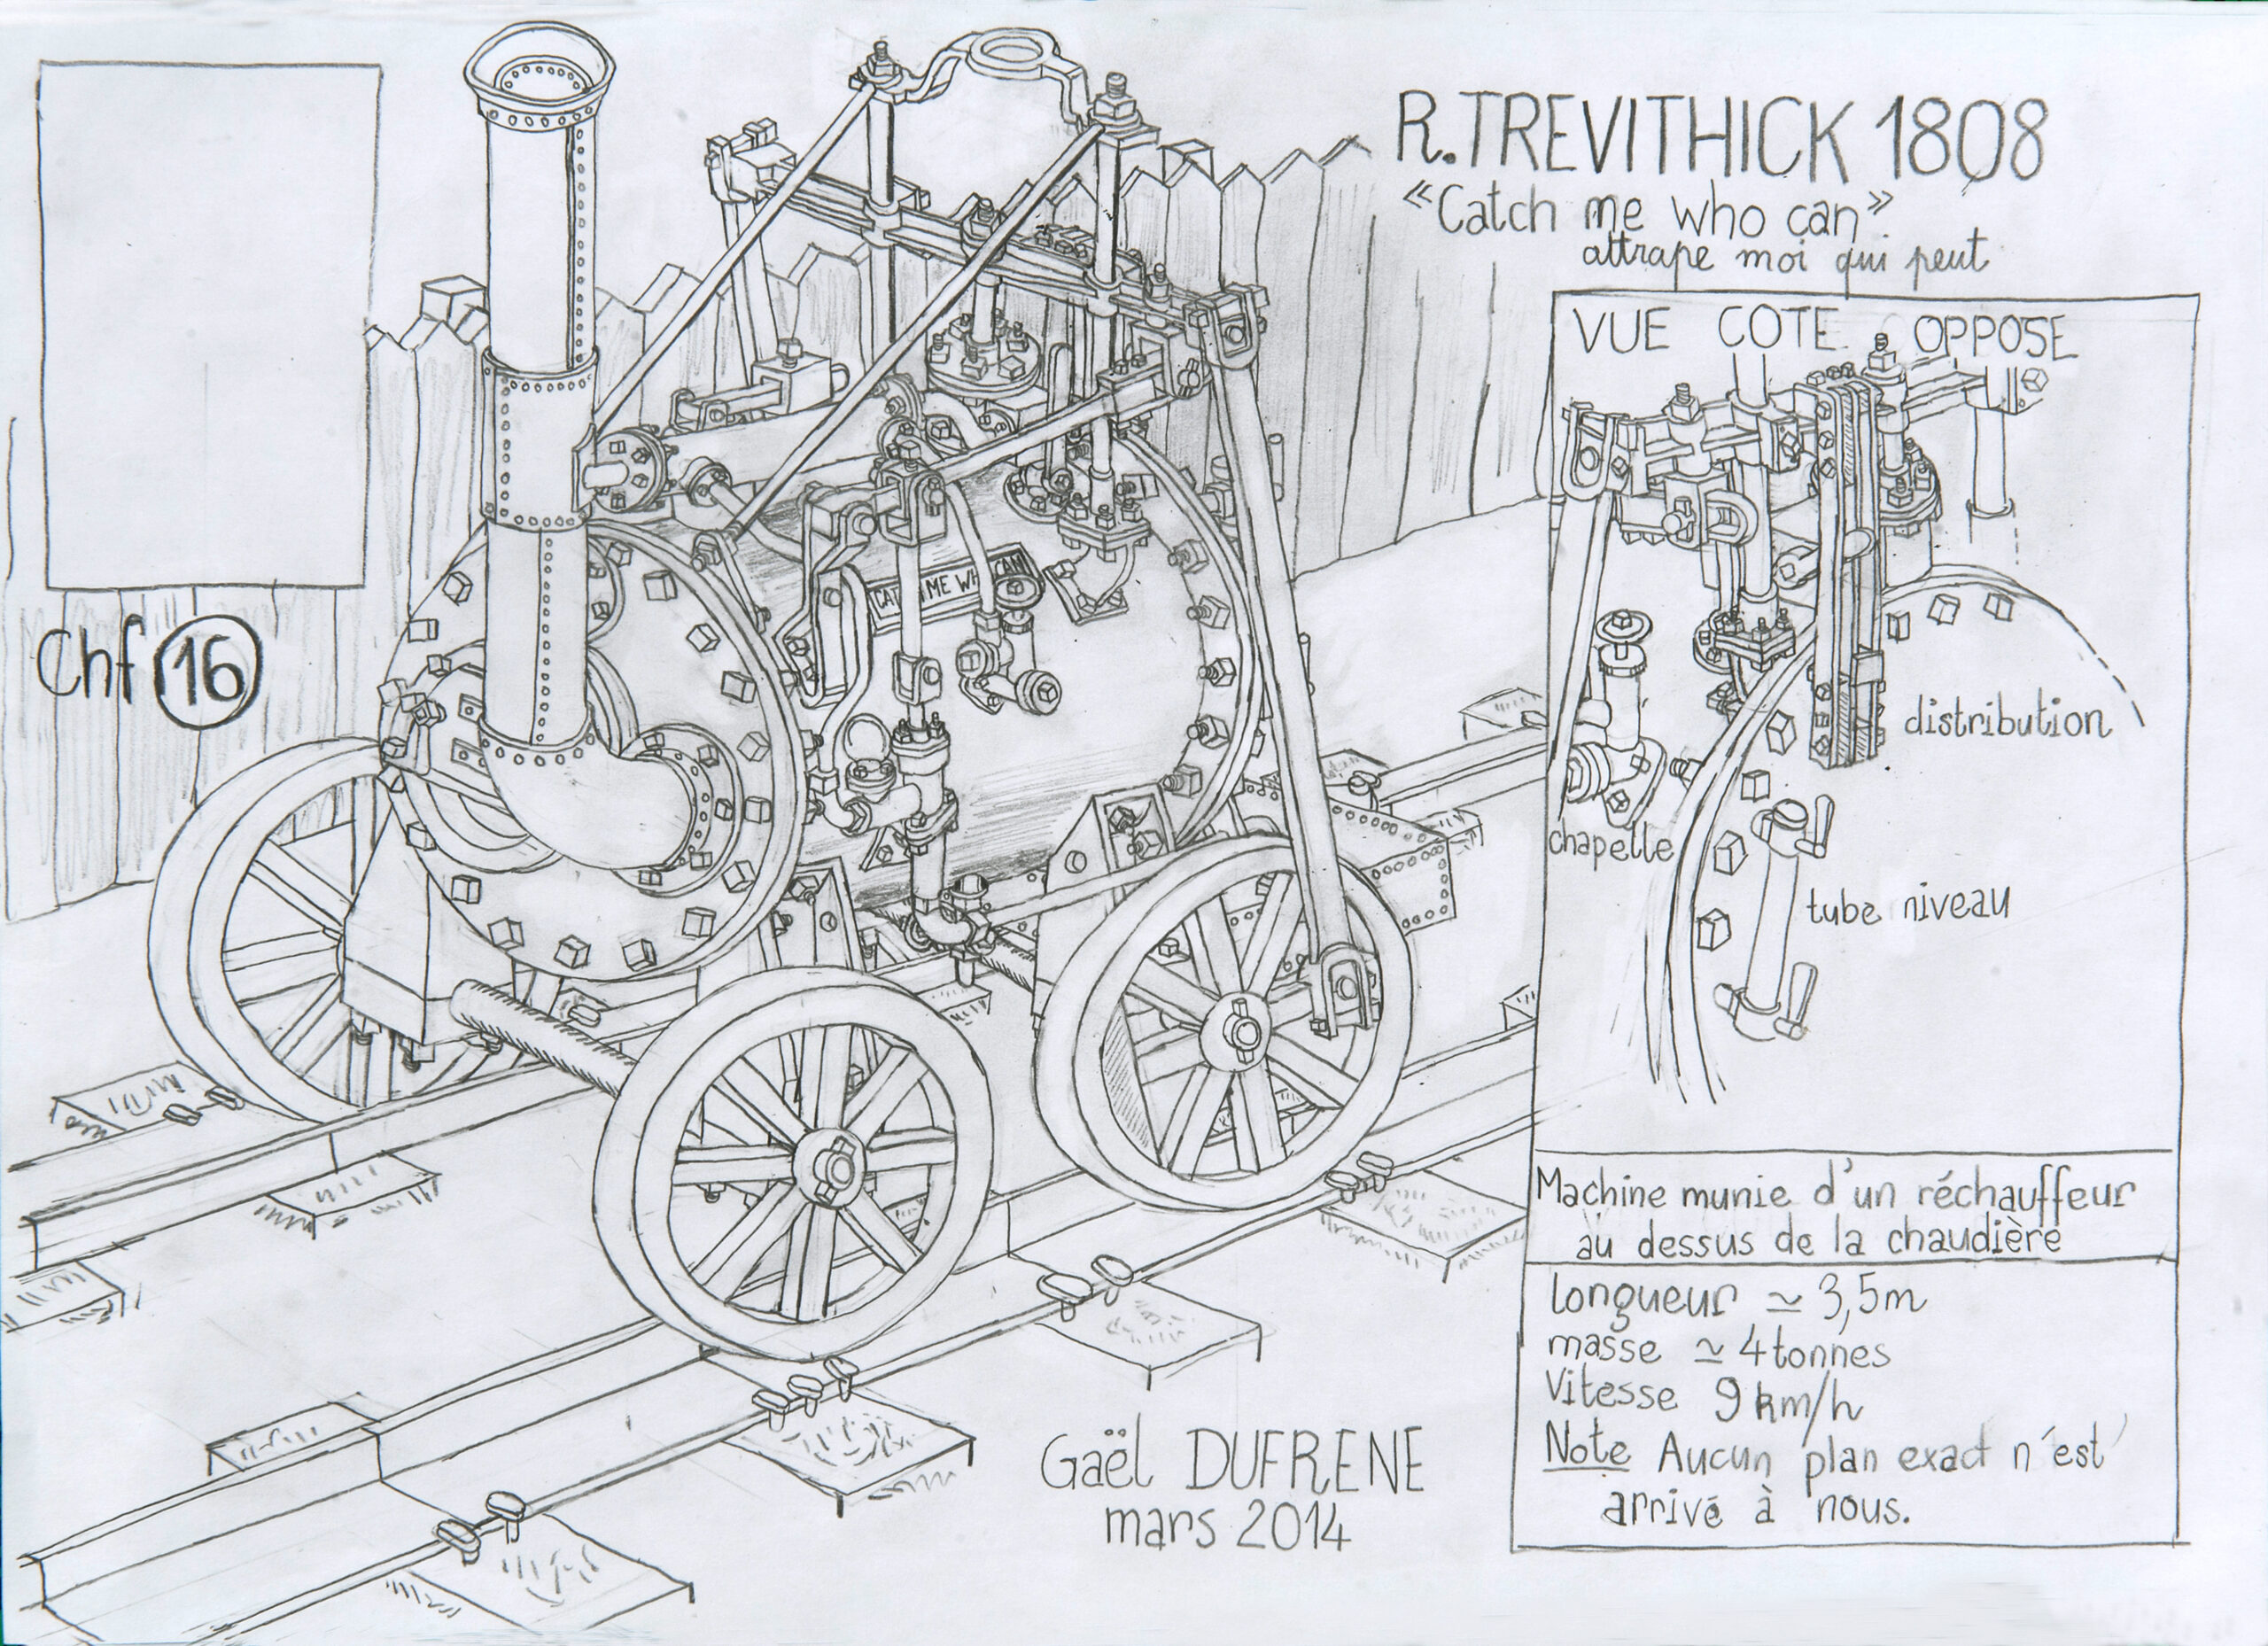 """Gaël Dufrène, R. Trevithick 1808 """"Catch me who can"""", 2014"""